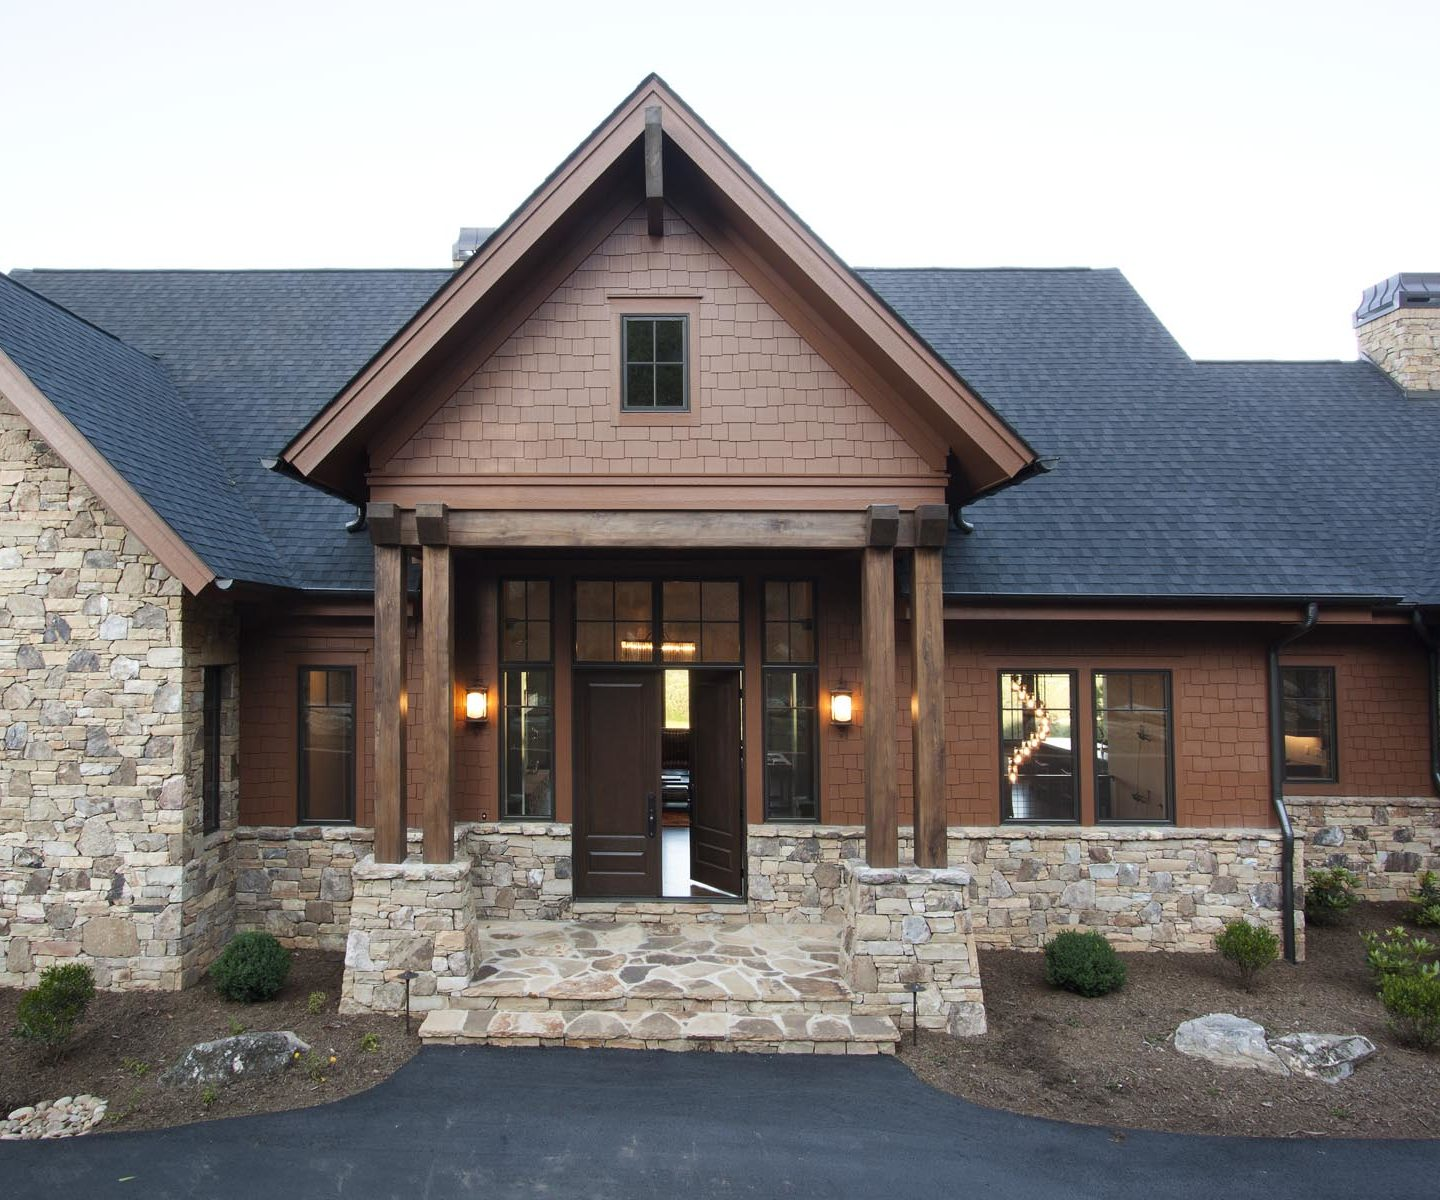 Ridgepine features a wood and stone exterior for this luxury home build.